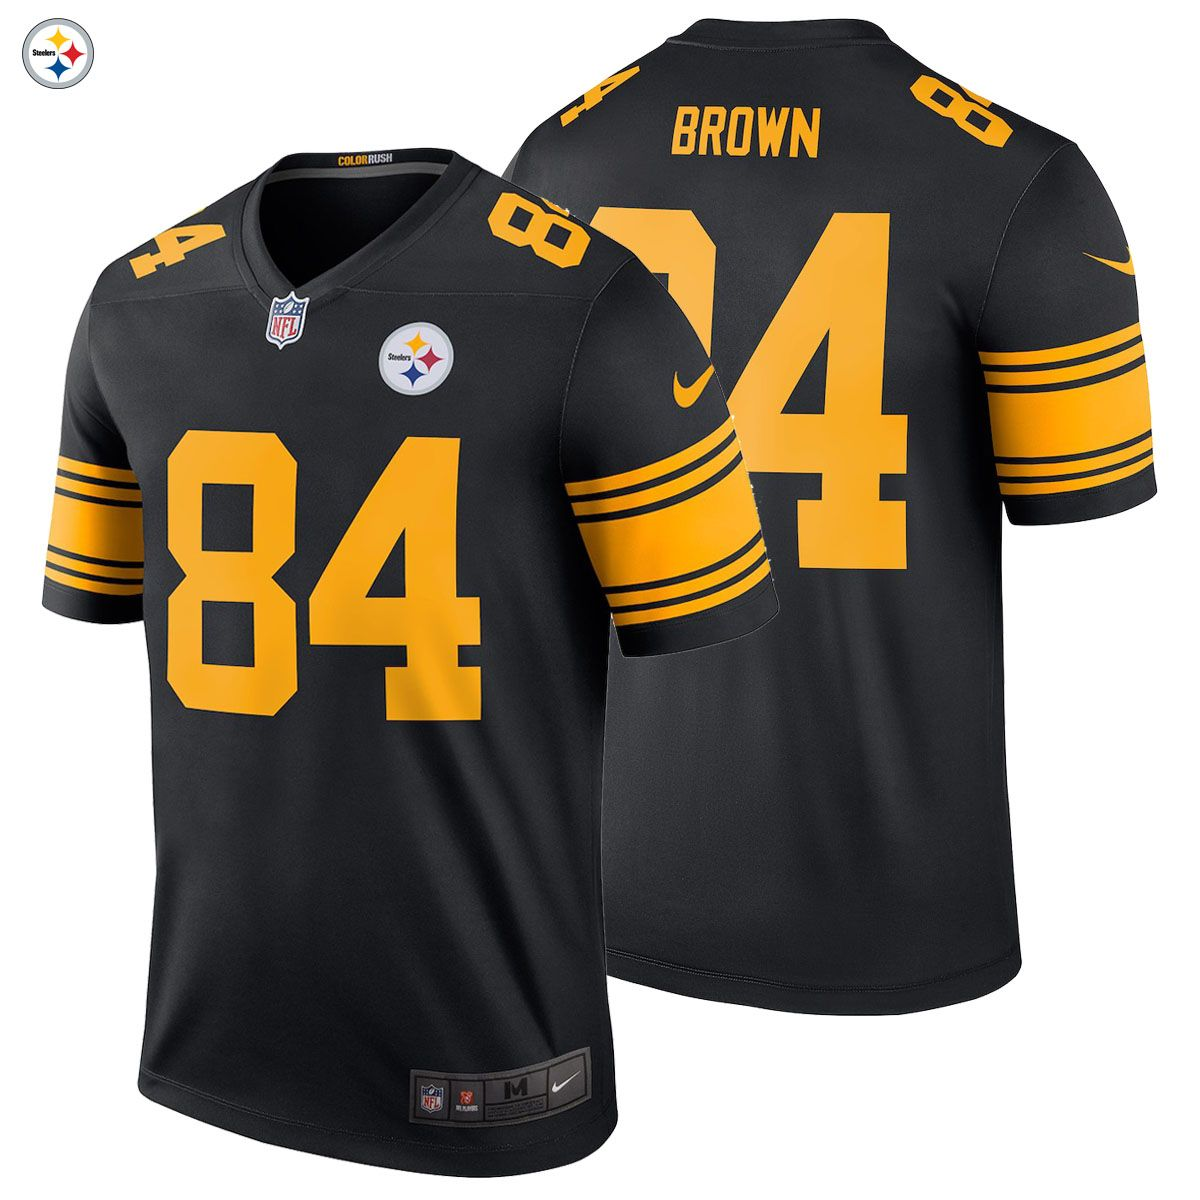 NEW 2018 NFL Antonio Brown Nike Color Rush Legend Jersey Pittsburgh  Steelers NWT  84 The New Color Rush Edition Is HERE!!!! Gear up for the new  2018 19 NFL ... 8965cc2a6